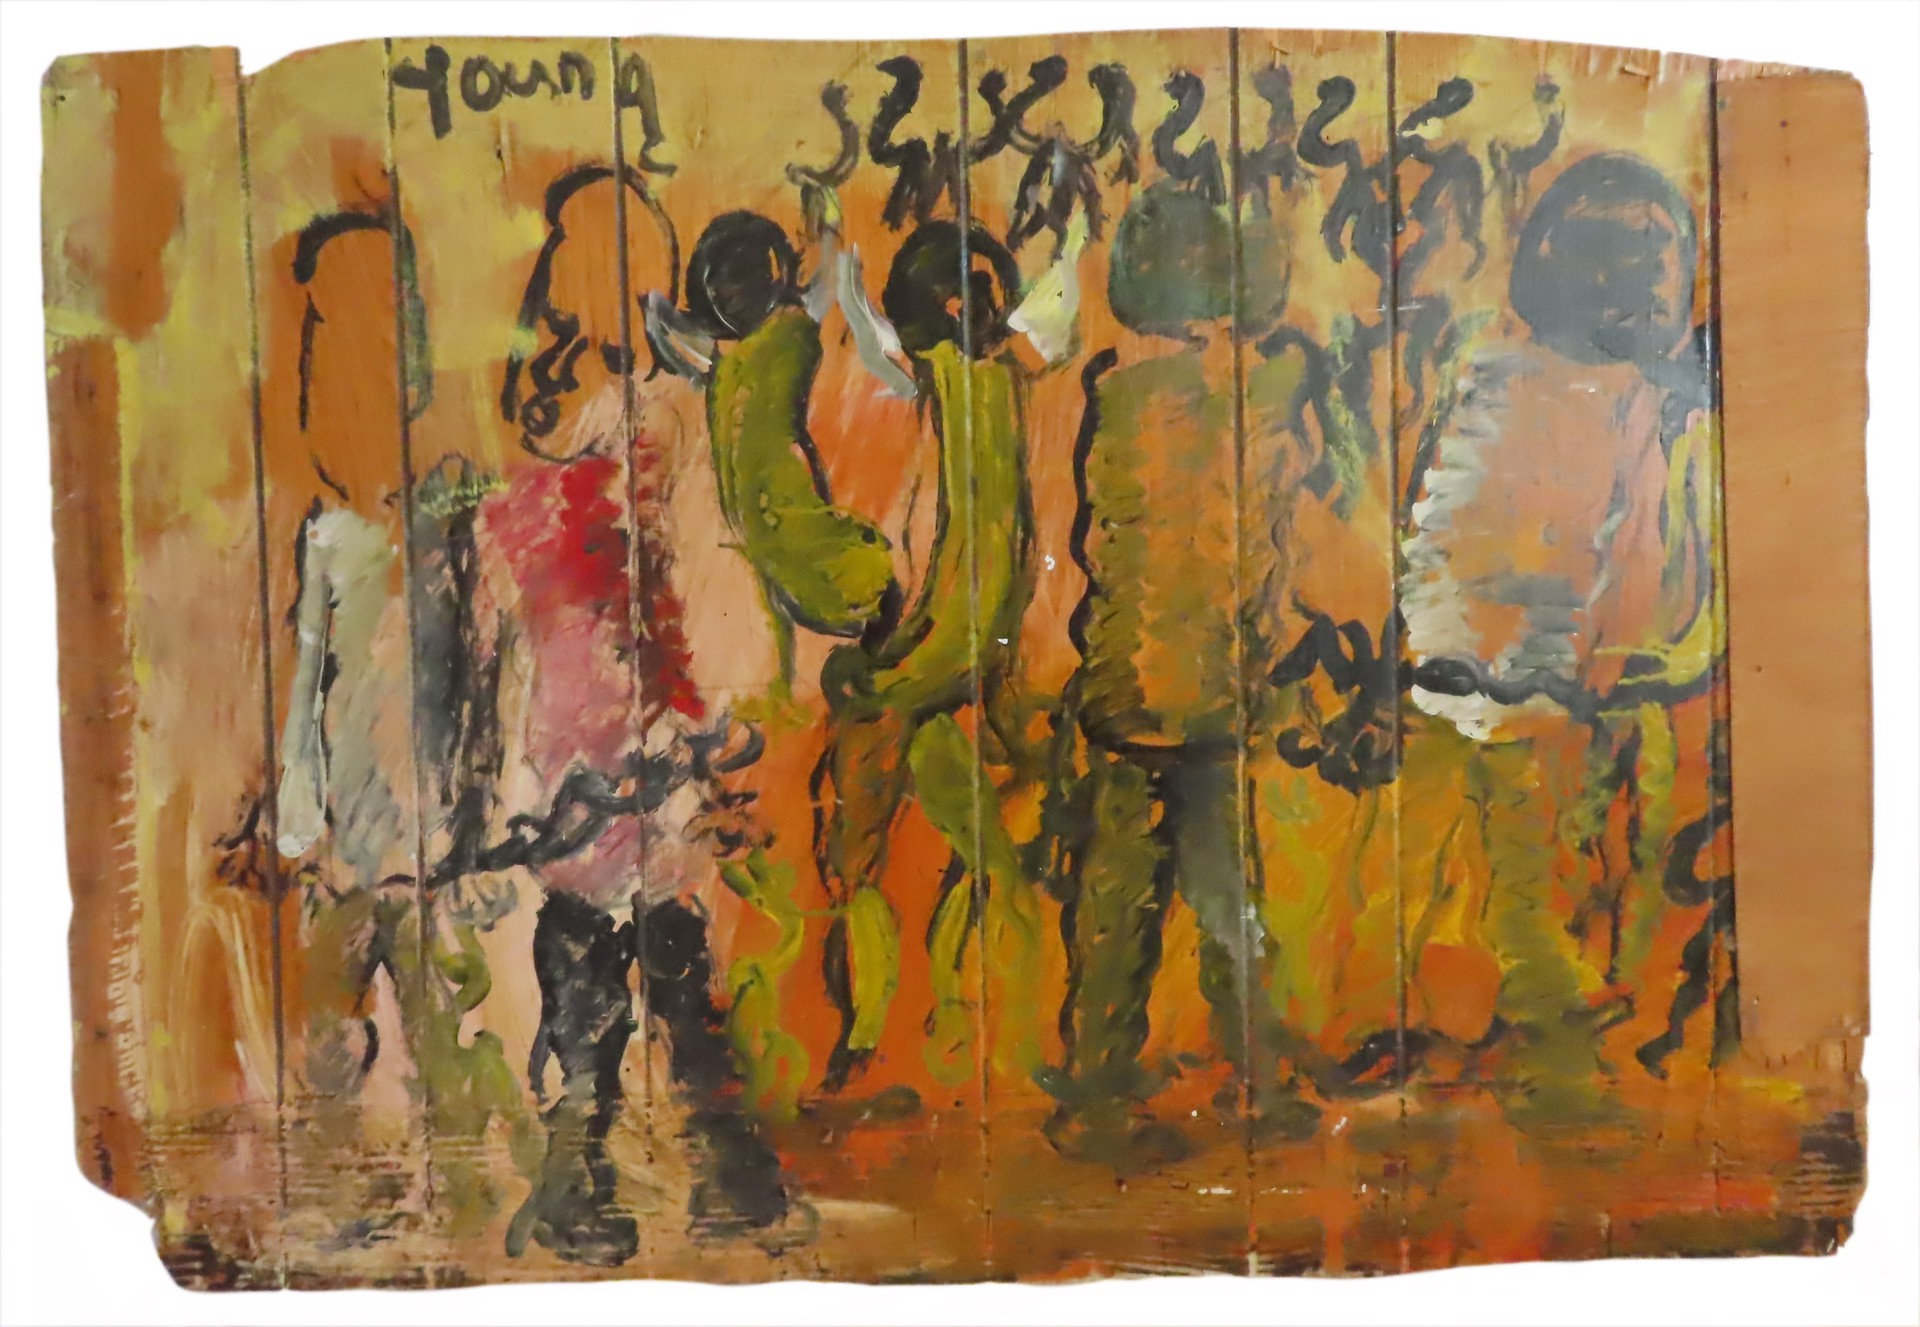 Chained to the Past by Purvis Young (1943 - 2010)